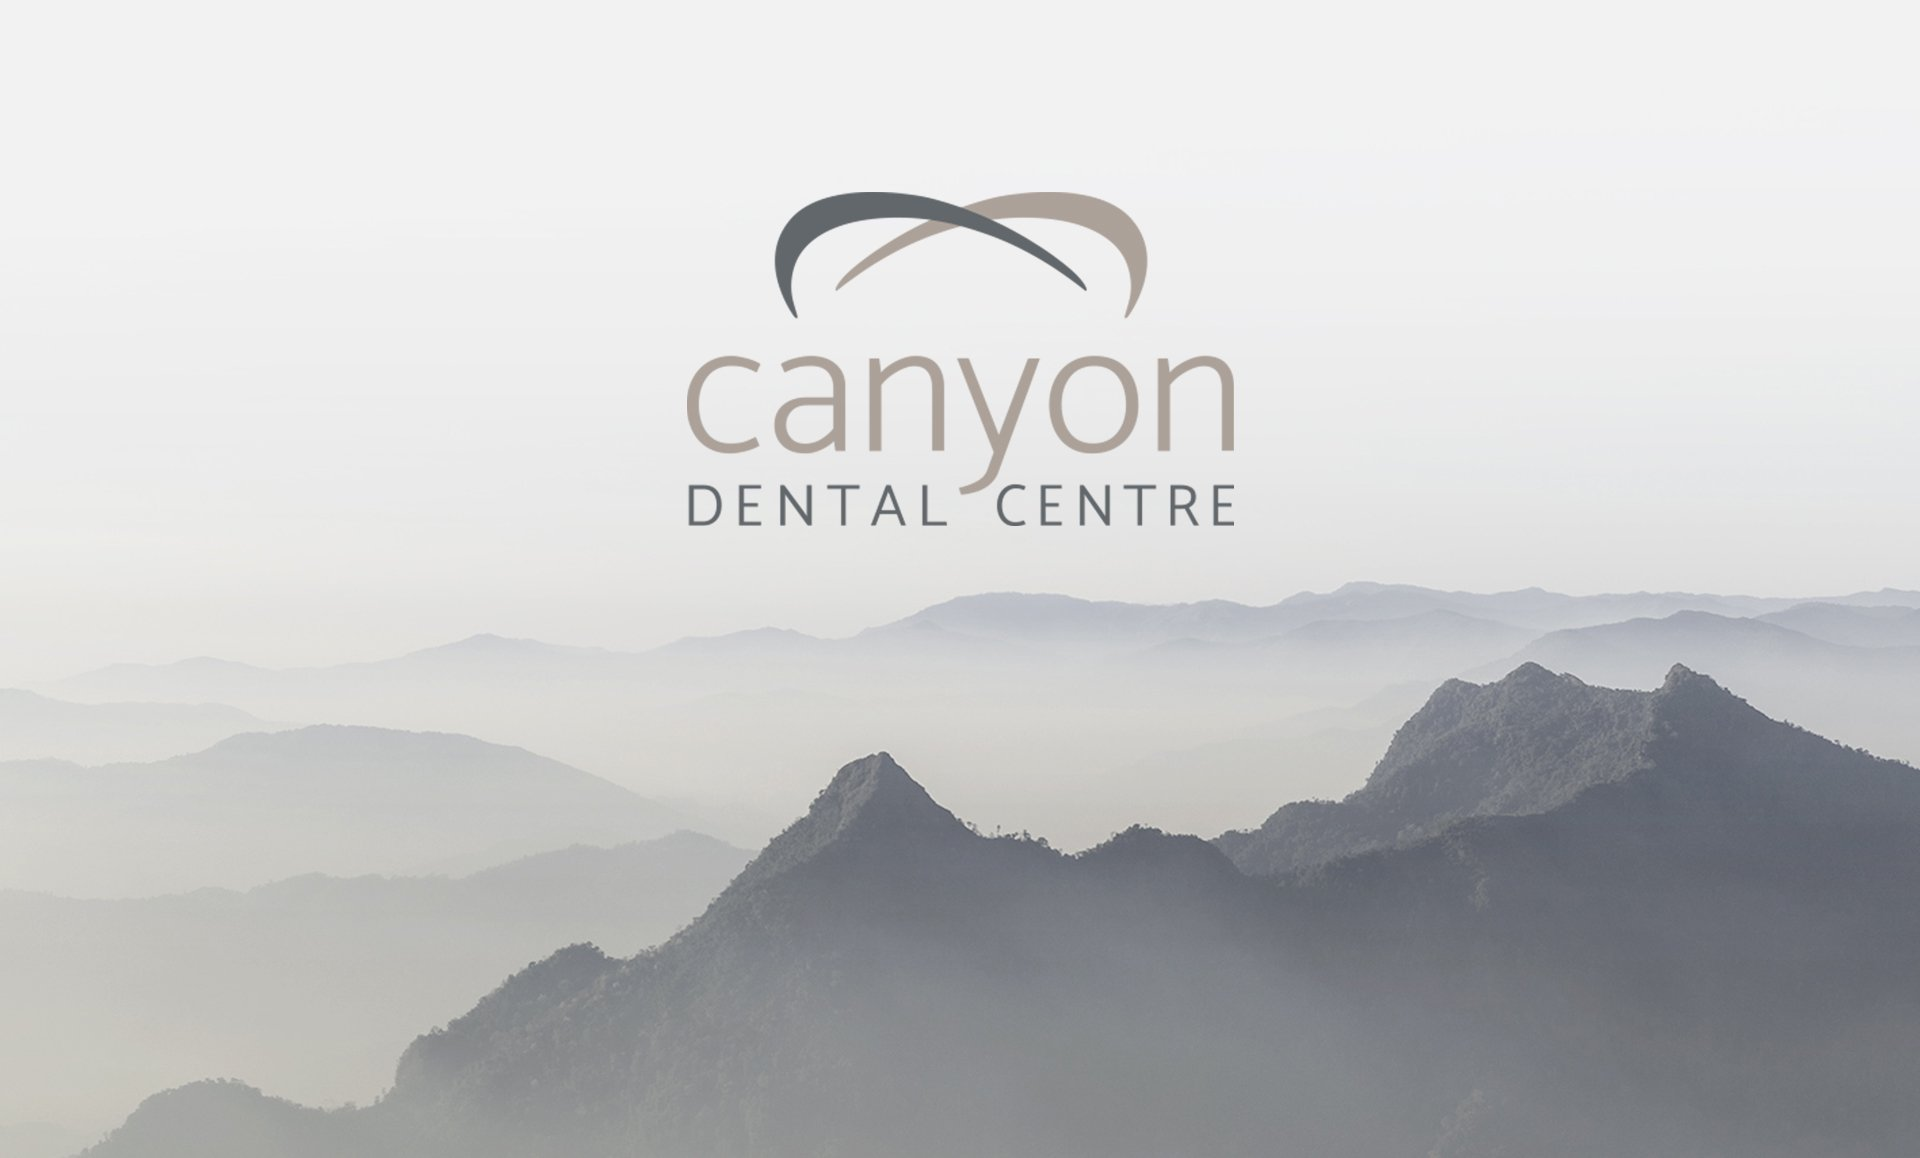 Read more on Canyon Dental